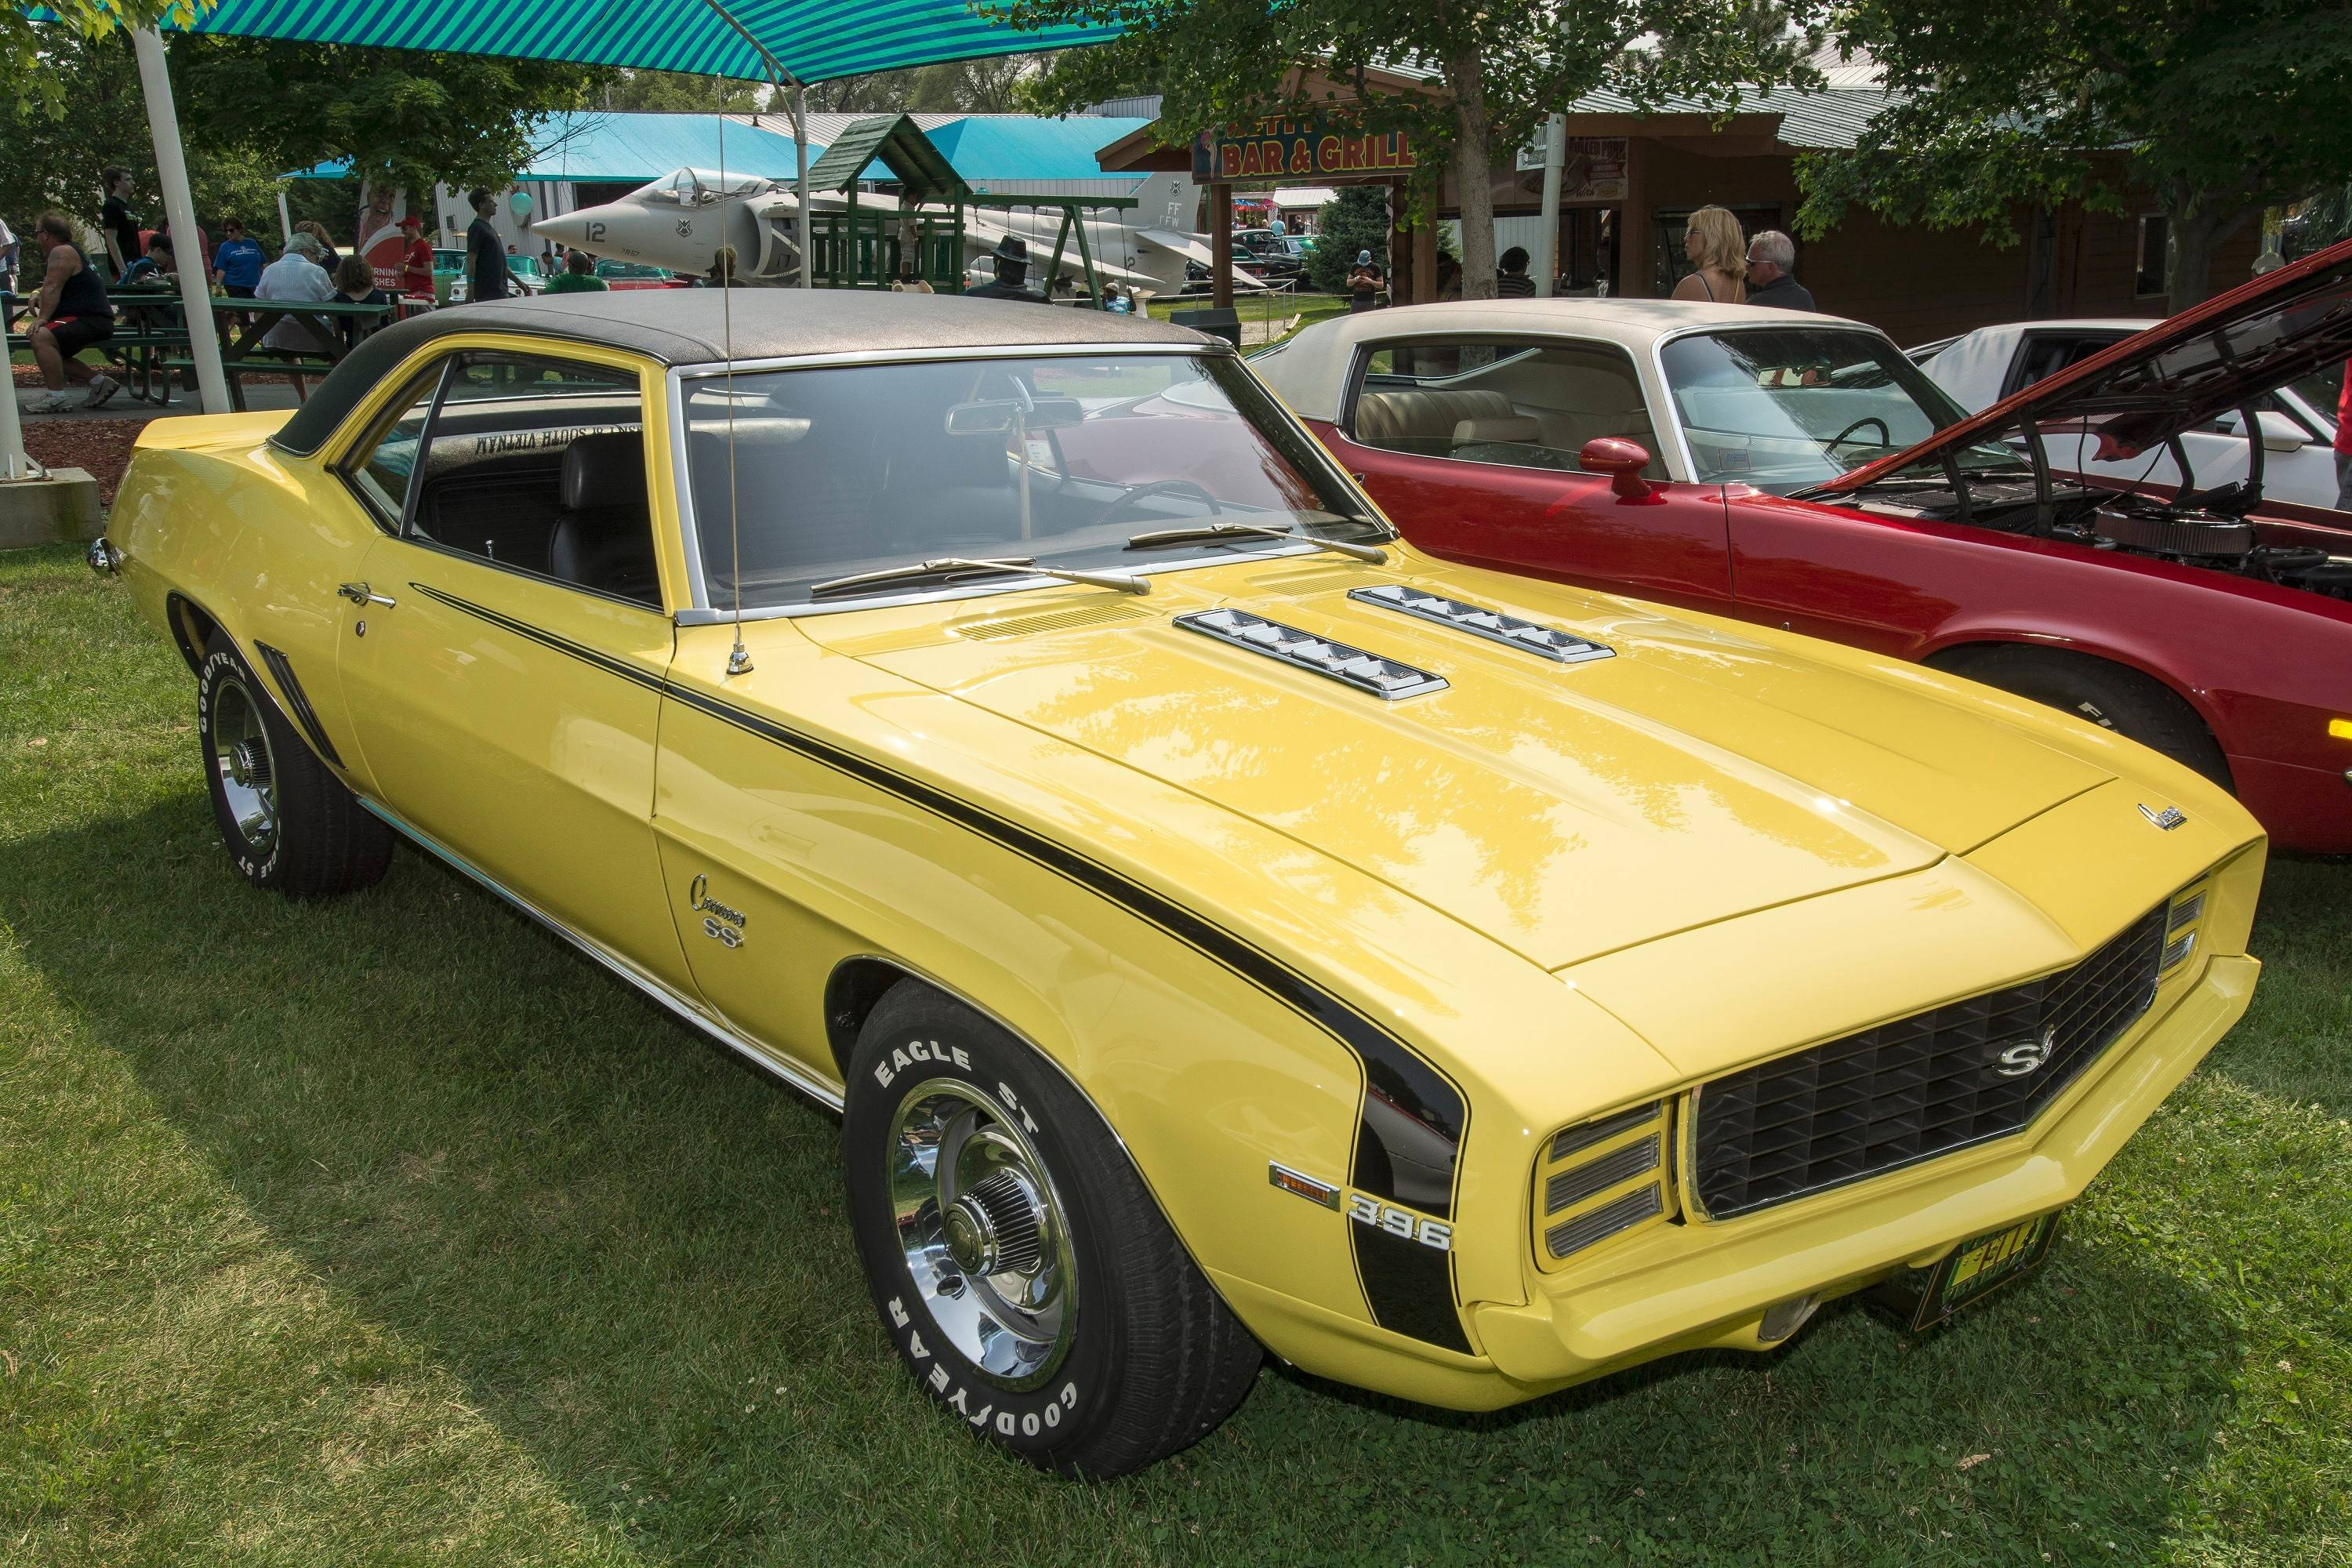 Selby has owned his first-generation, 1969 Camaro for more than two decades.